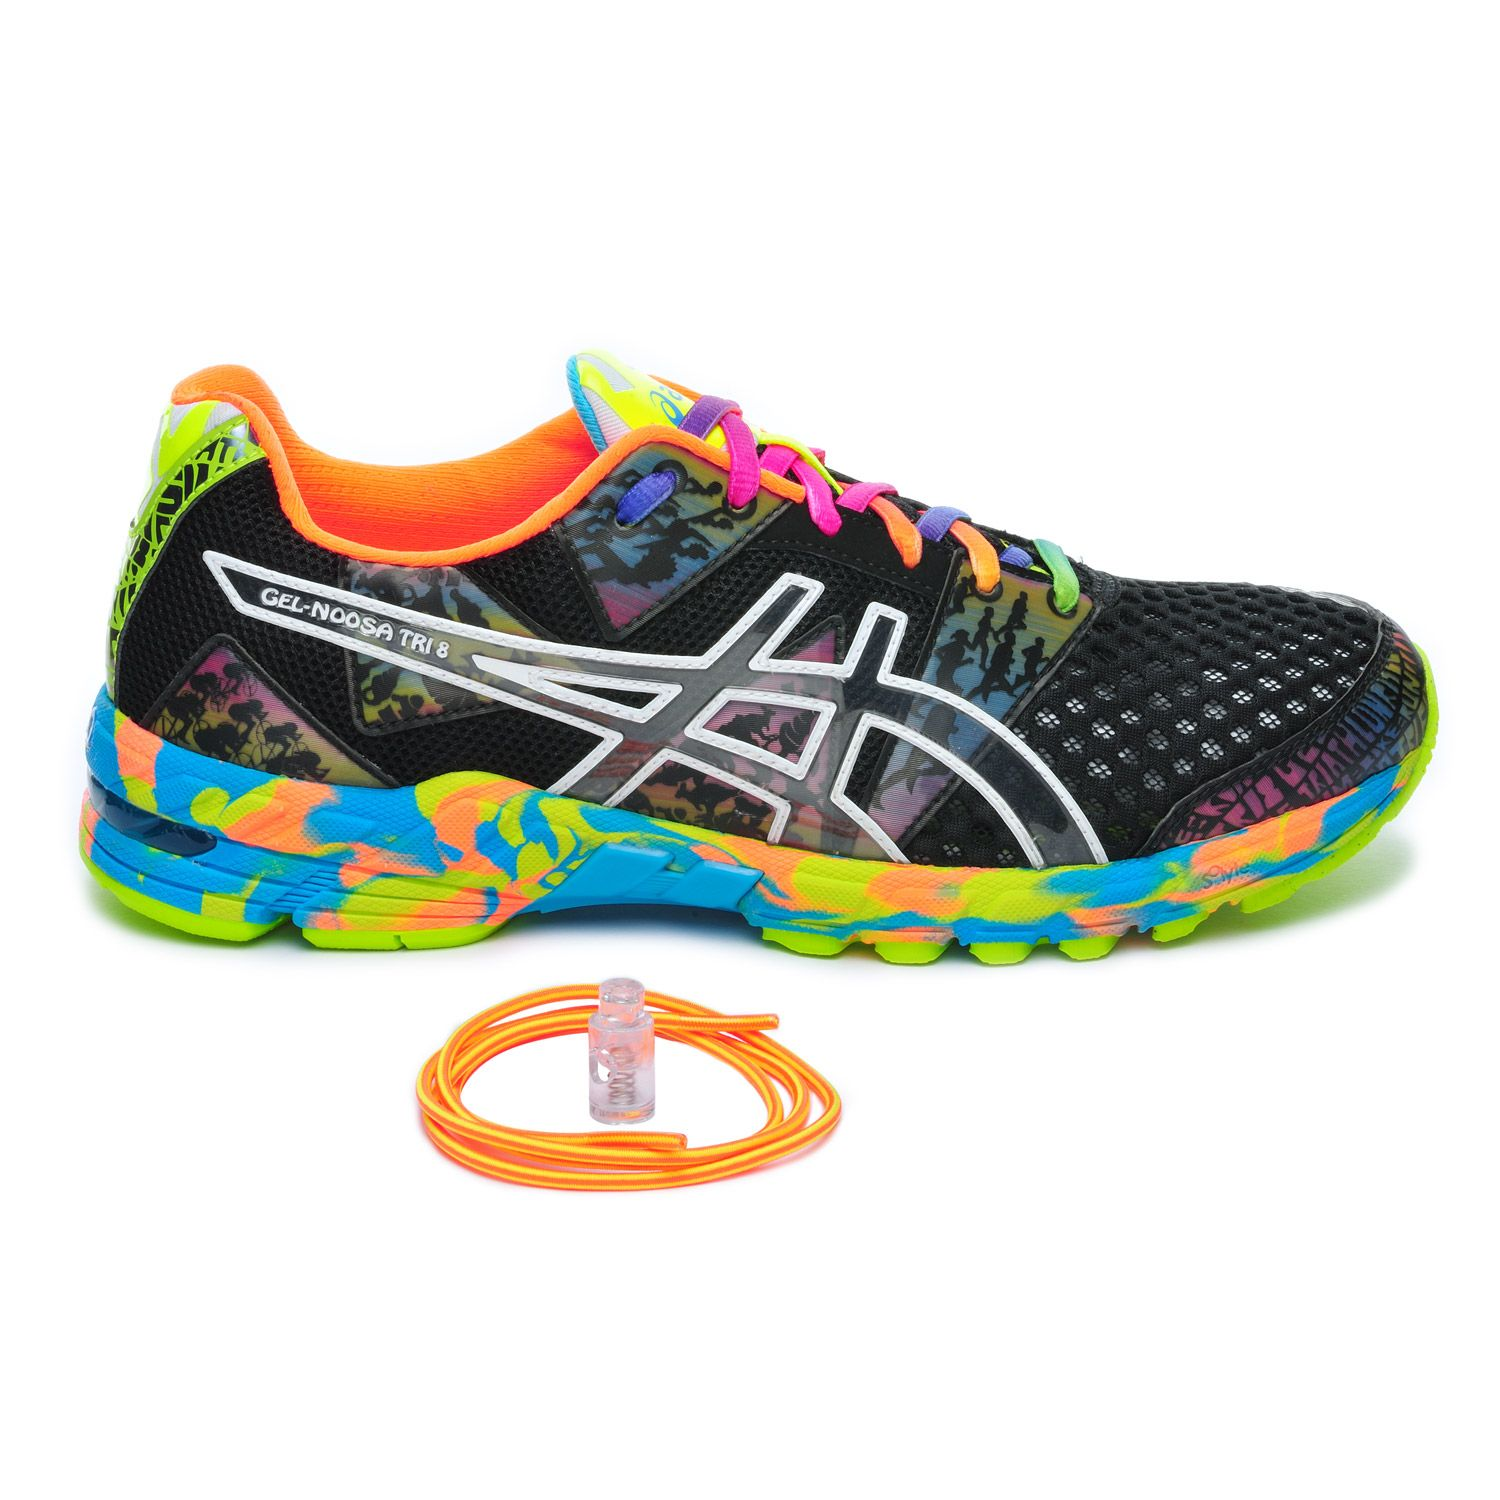 Chaussures Running Asics Gel Noosa Tri 8 Homme Noir/Multicolor